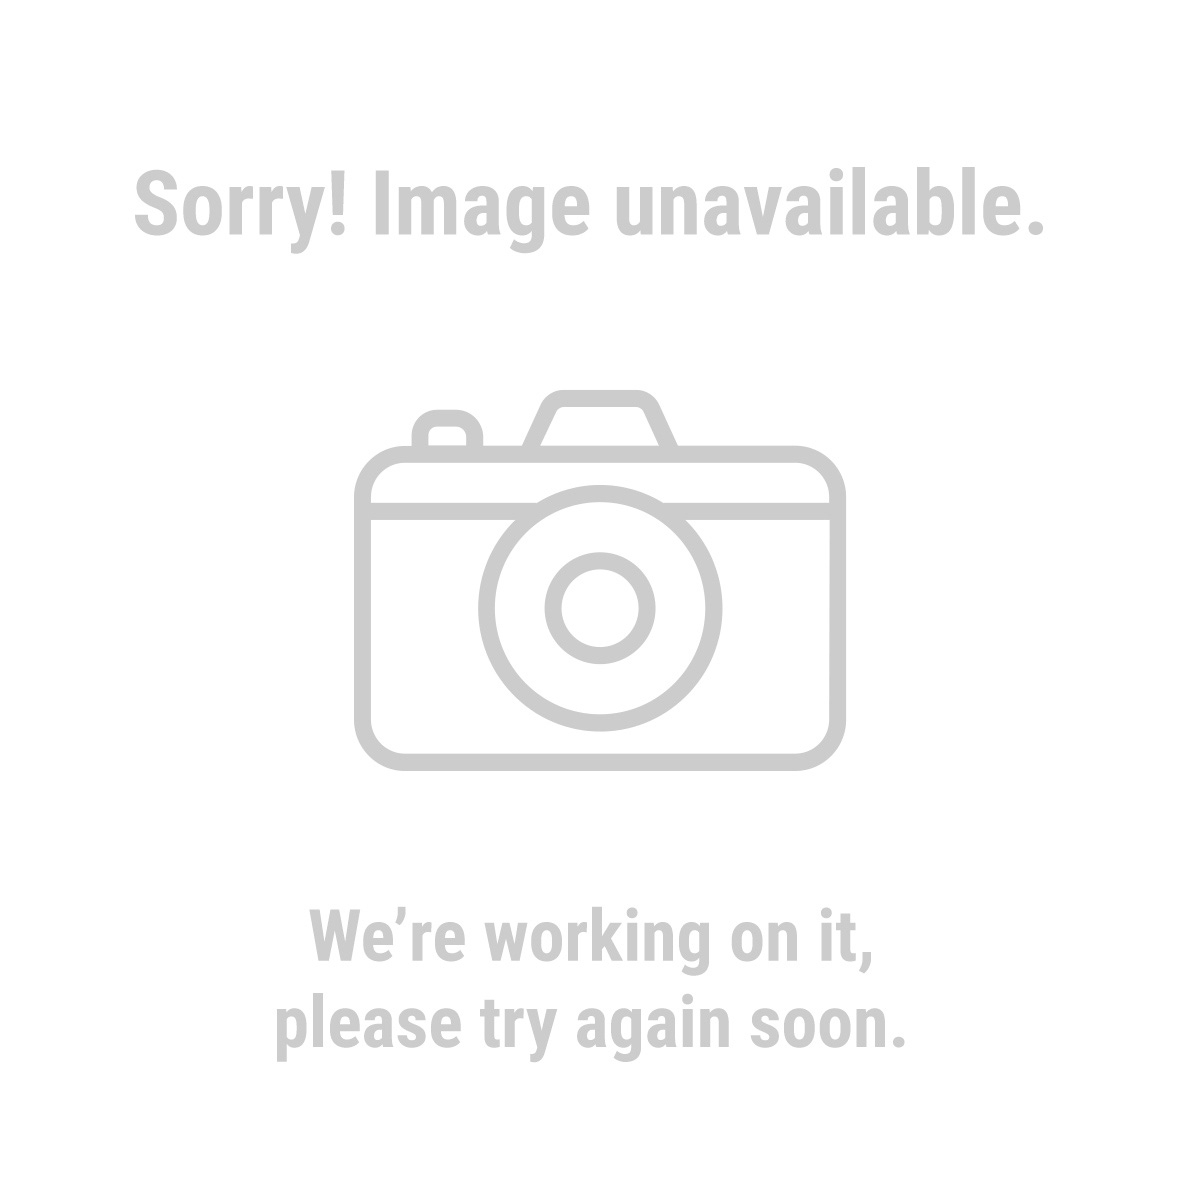 RiteLite 96793 LED Under-Cabinet Light